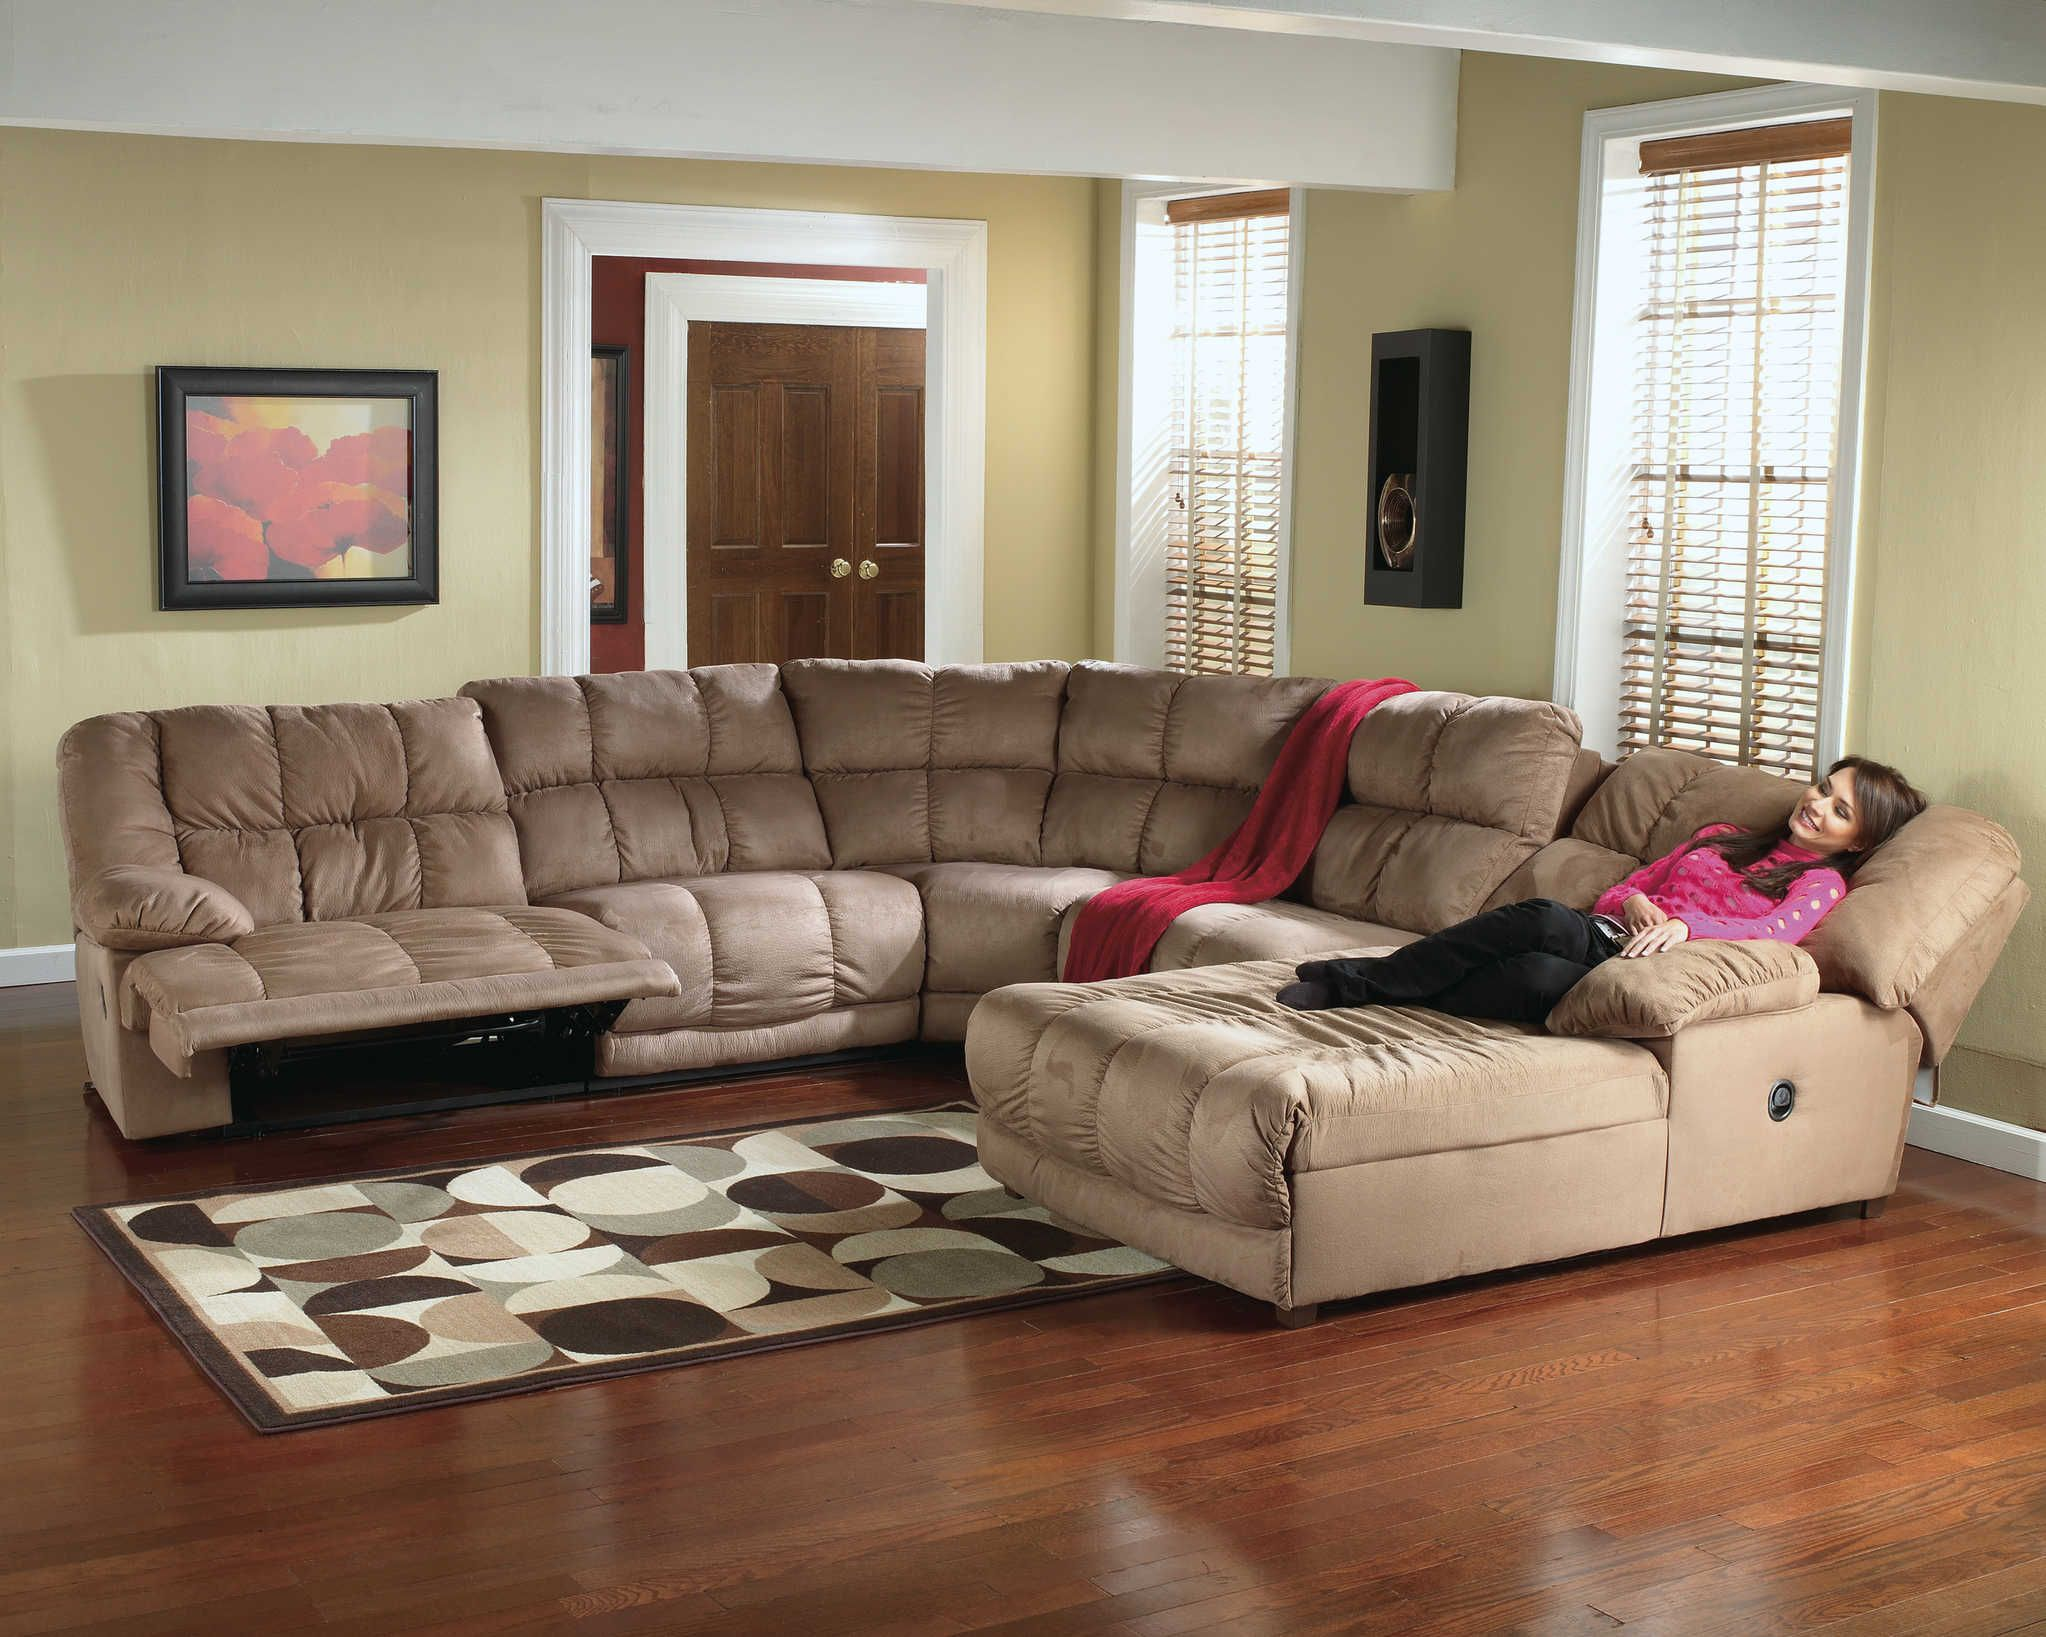 Microfiber recliner sectional sectional sofa recliner for Family room furniture